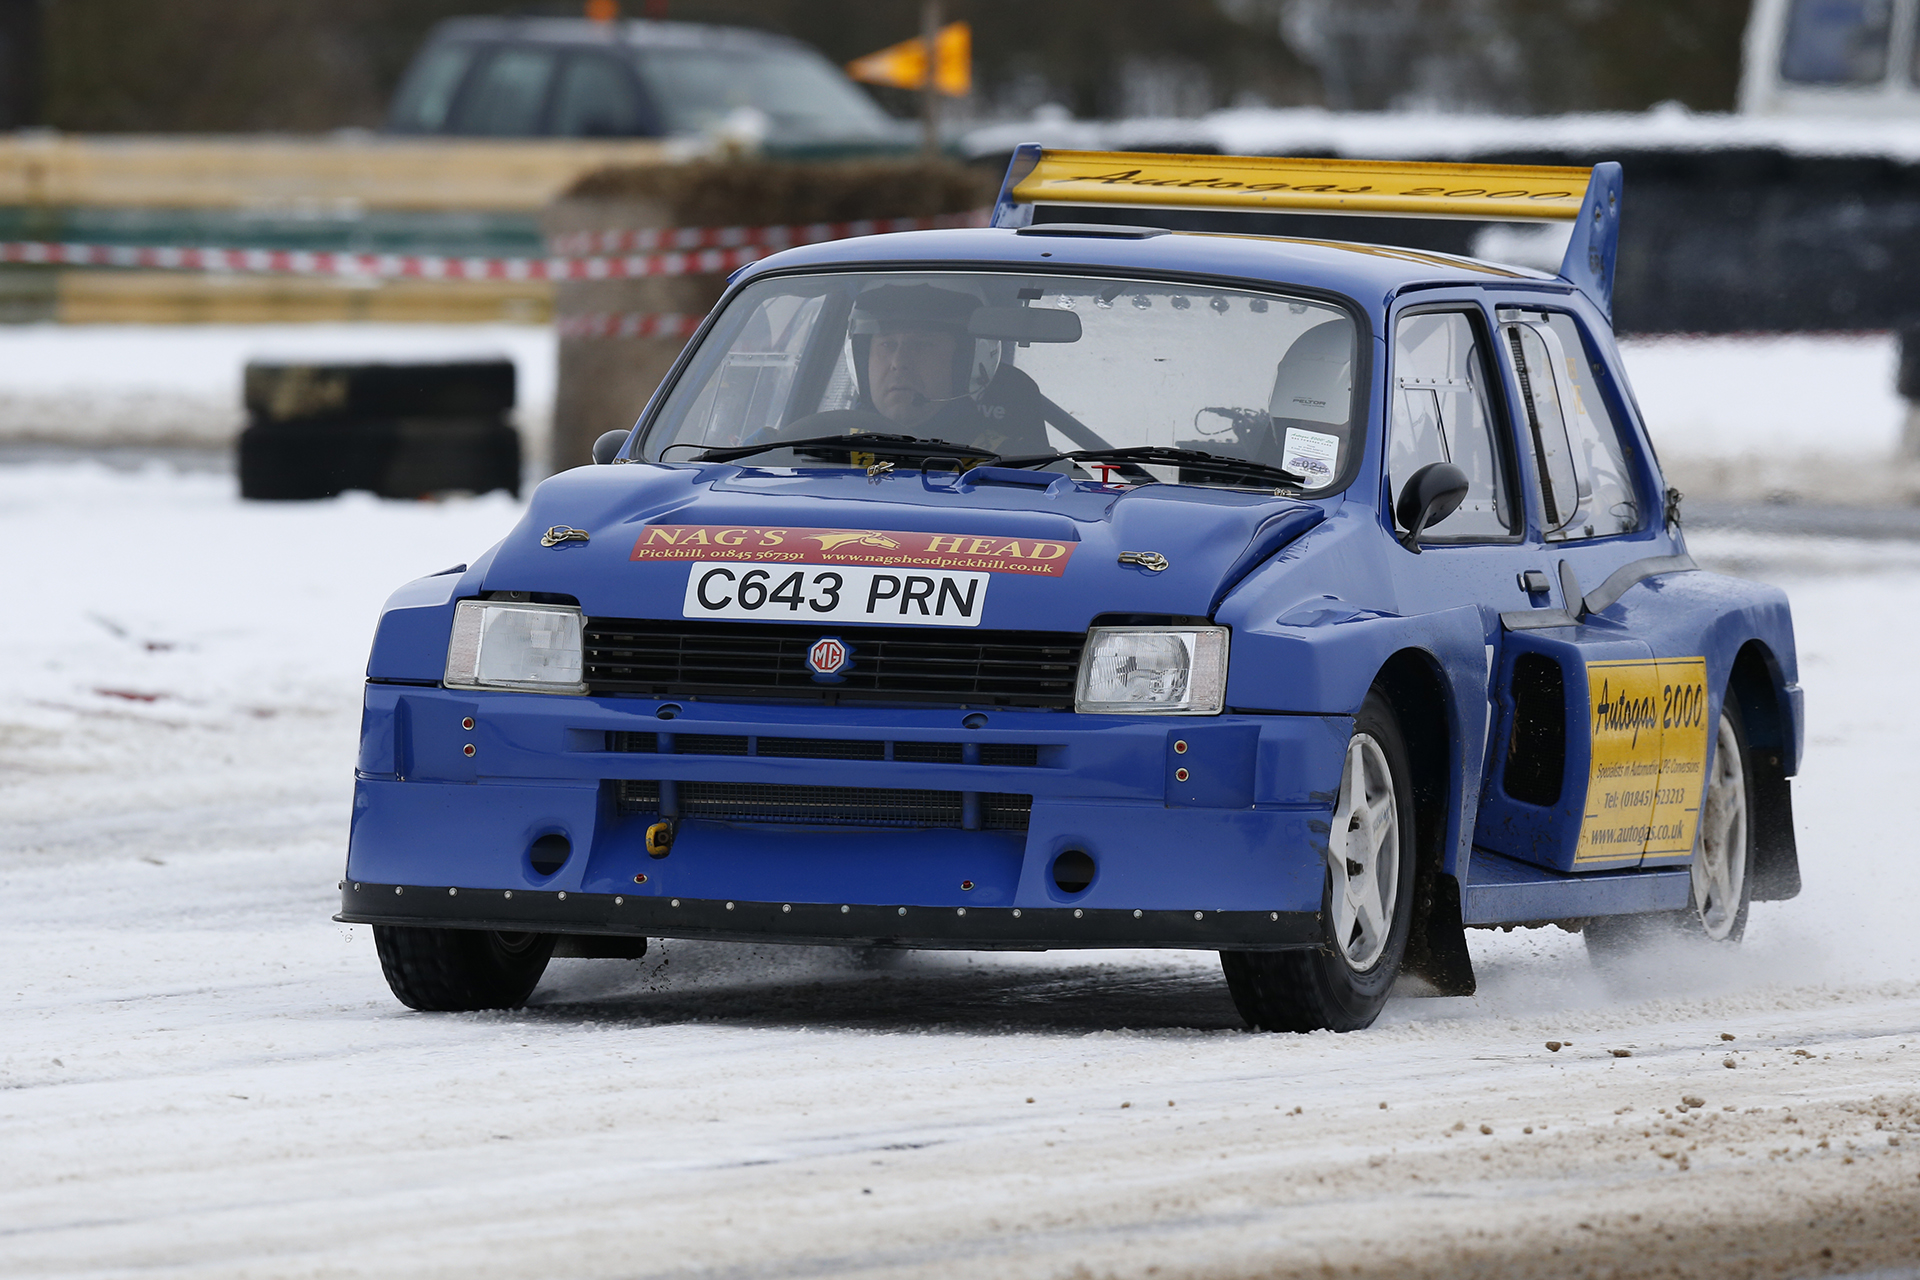 WHITE TRACK: Last year's Jack Frost Rally winners Chris Wise and Tracey Taylor-West will be hoping for more favourable conditions this year